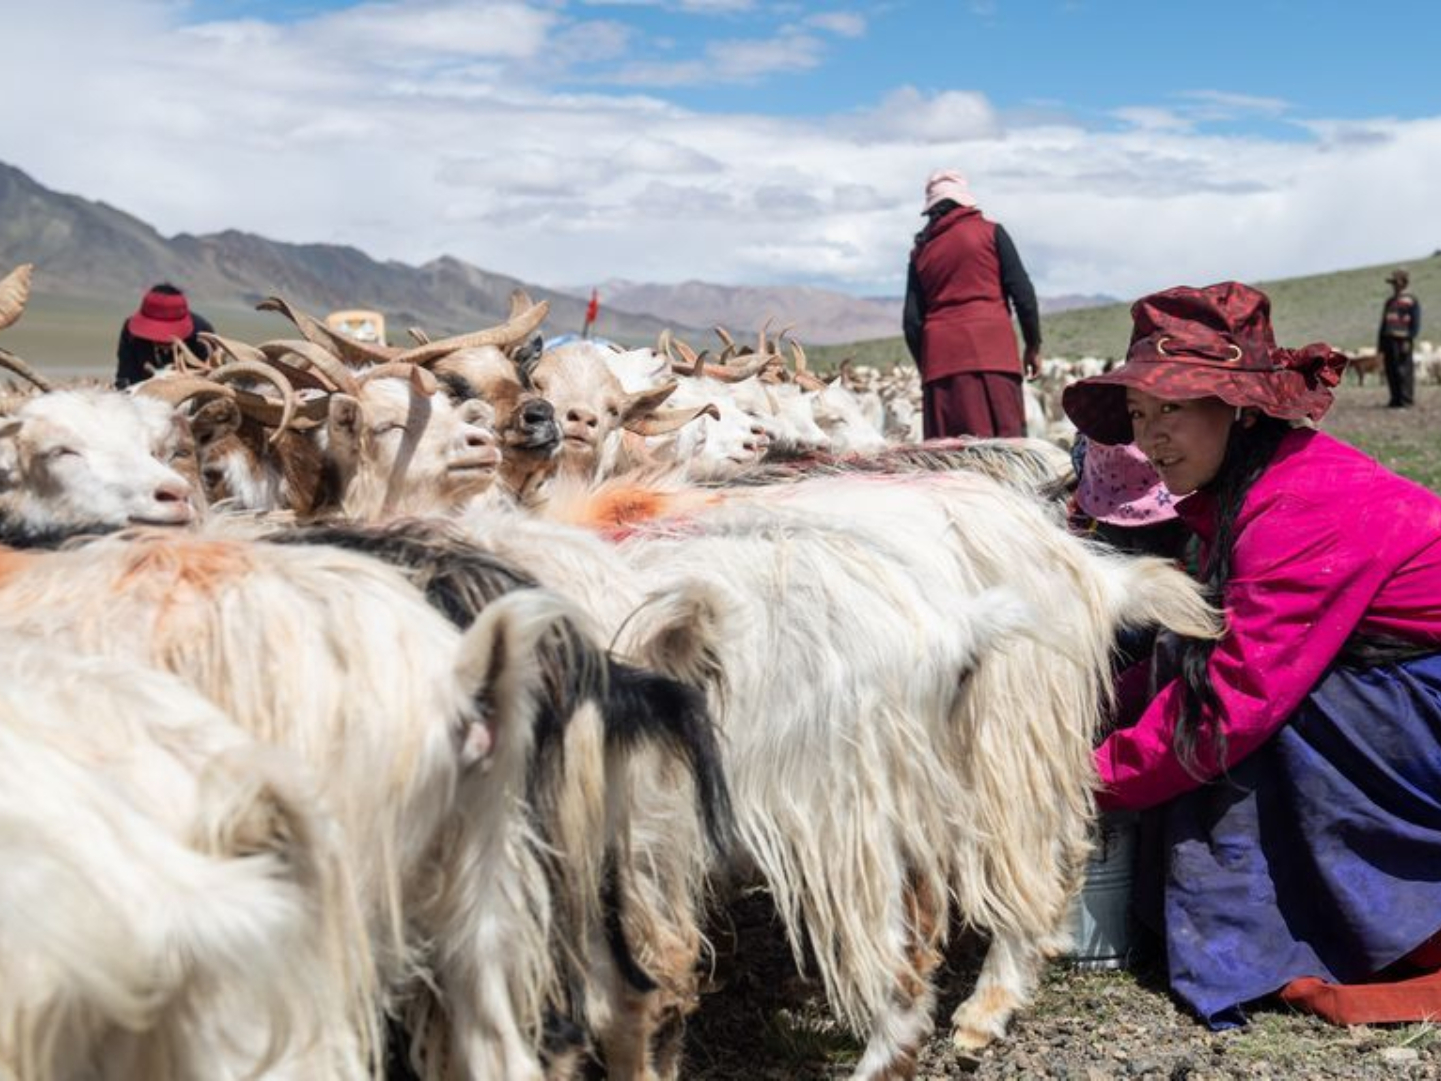 China's poverty relief fund tops 139 billion yuan in 2020